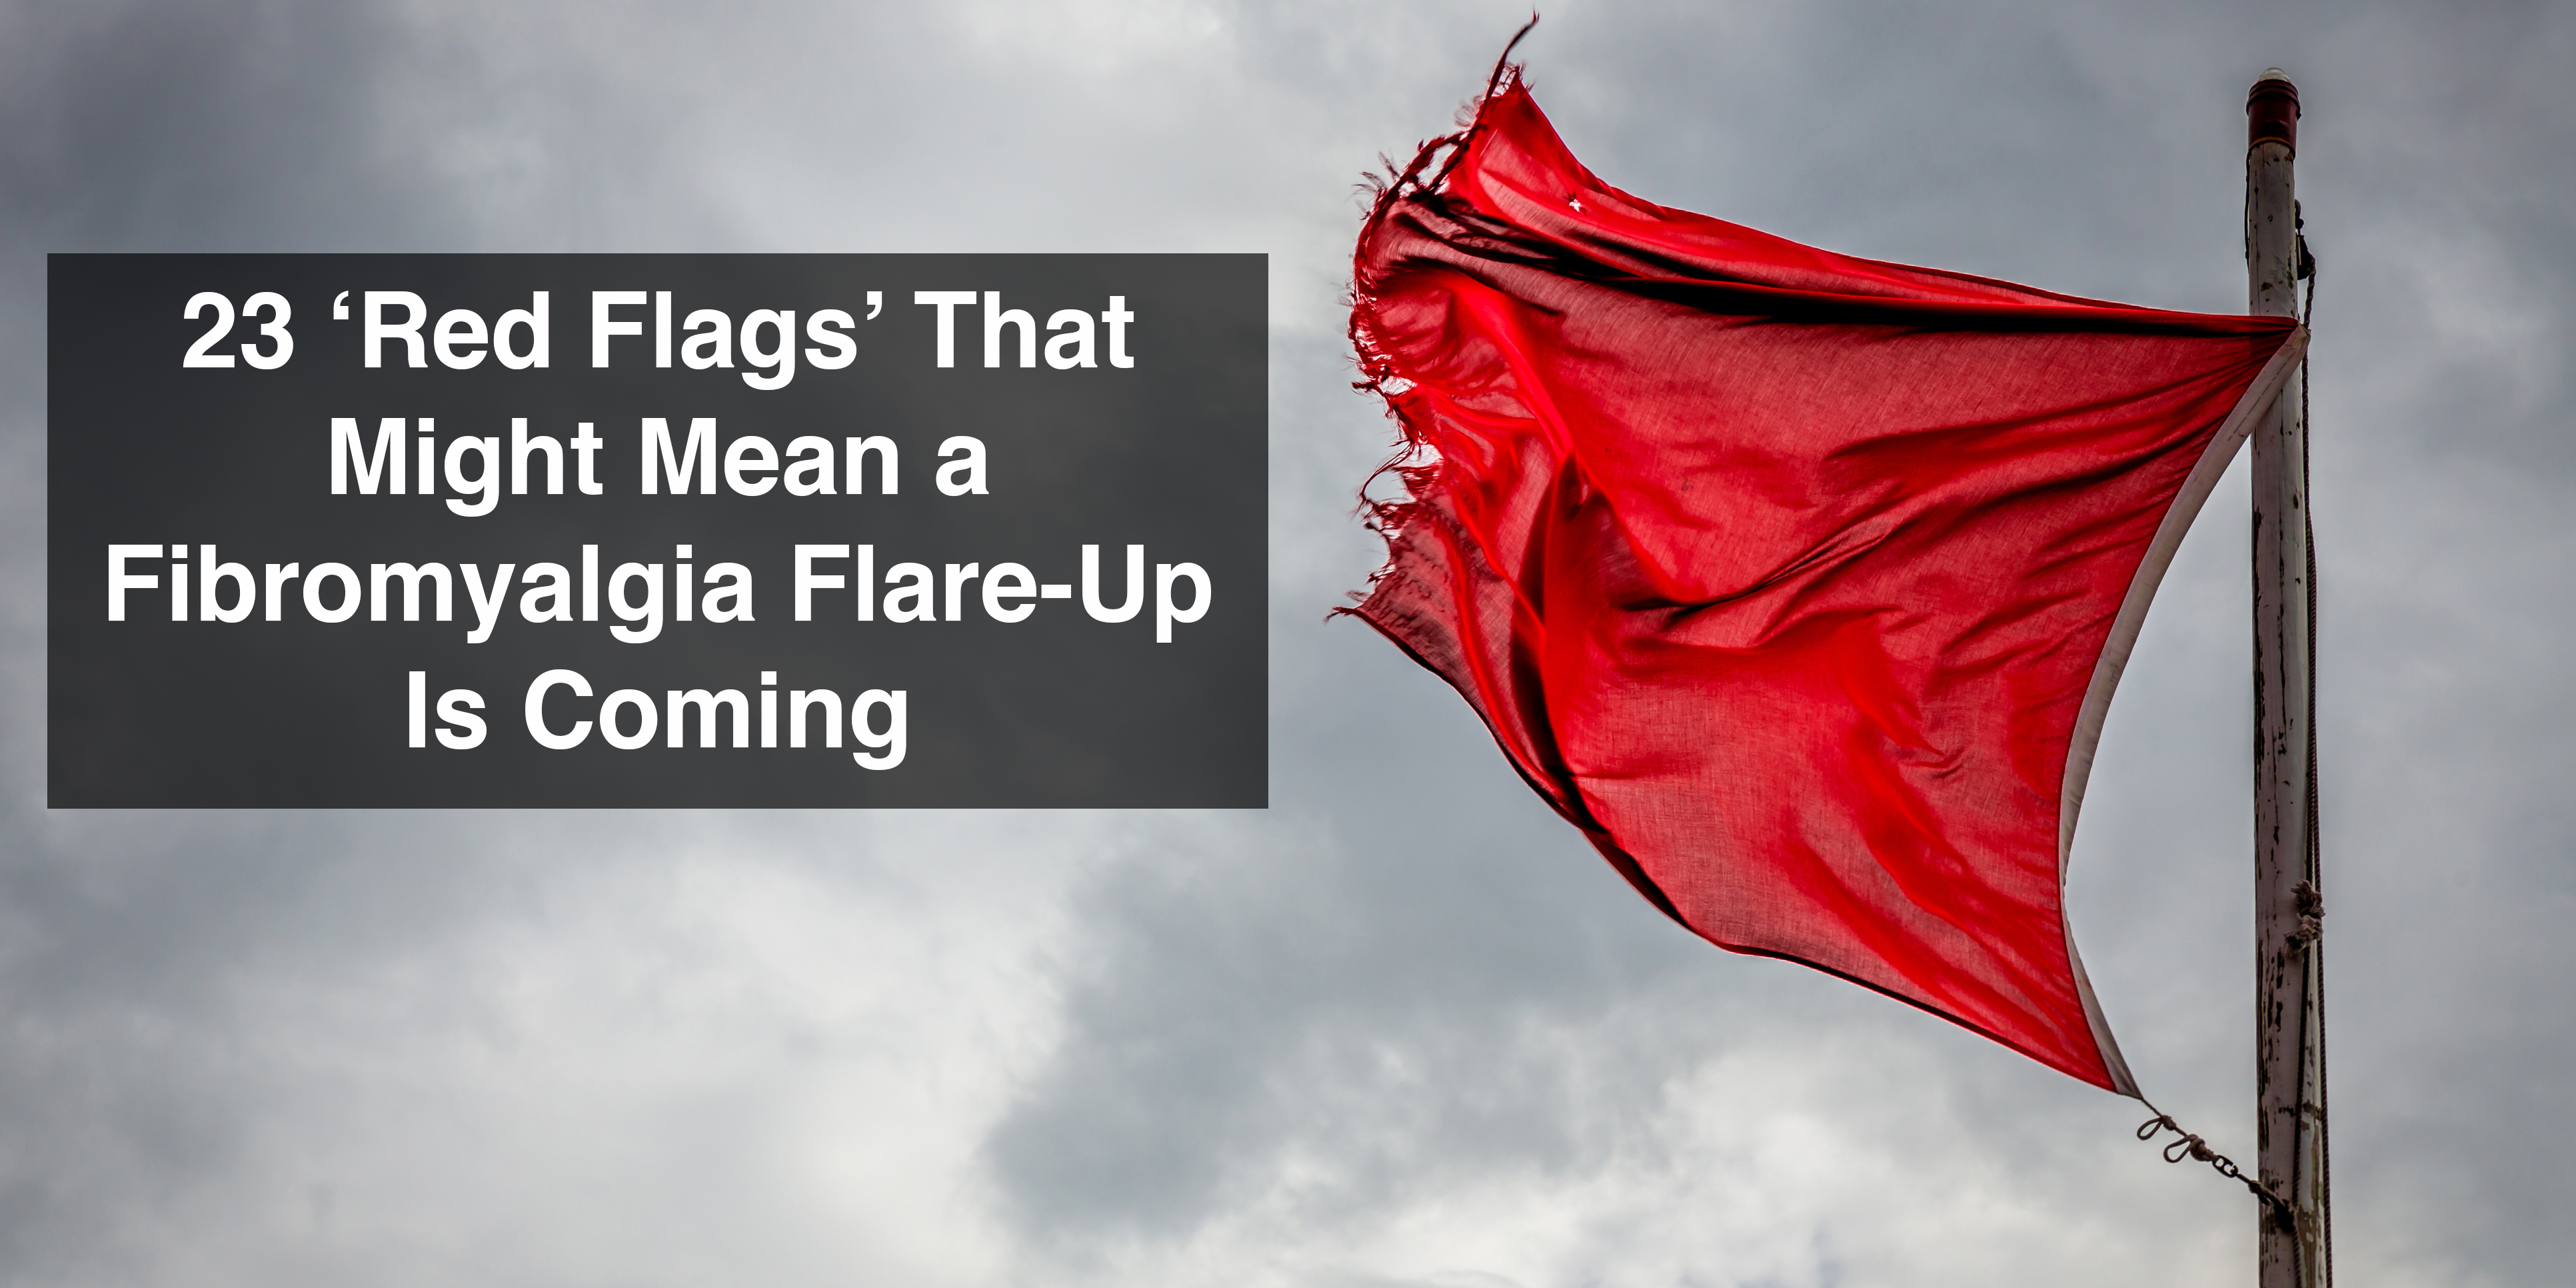 Image result for 23 'Red Flags' That Might Mean a Fibromyalgia Flare-Up Is Coming